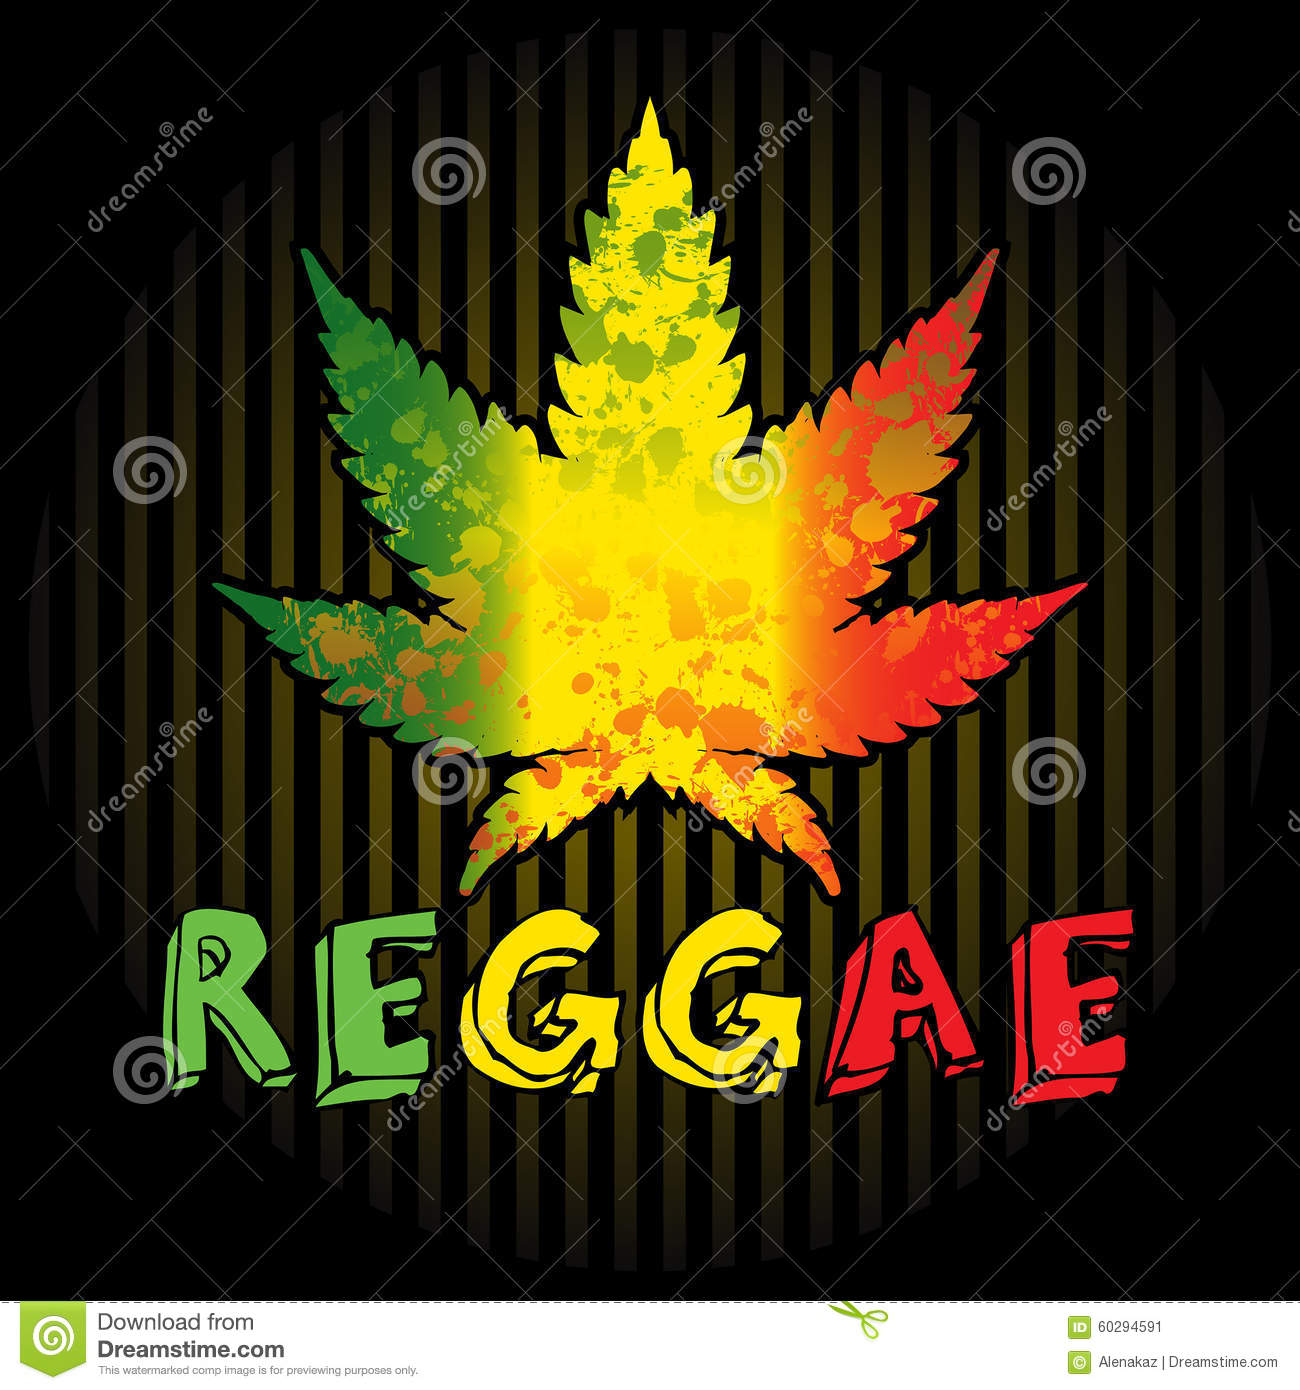 Reggae Stock Vector Image 60294591